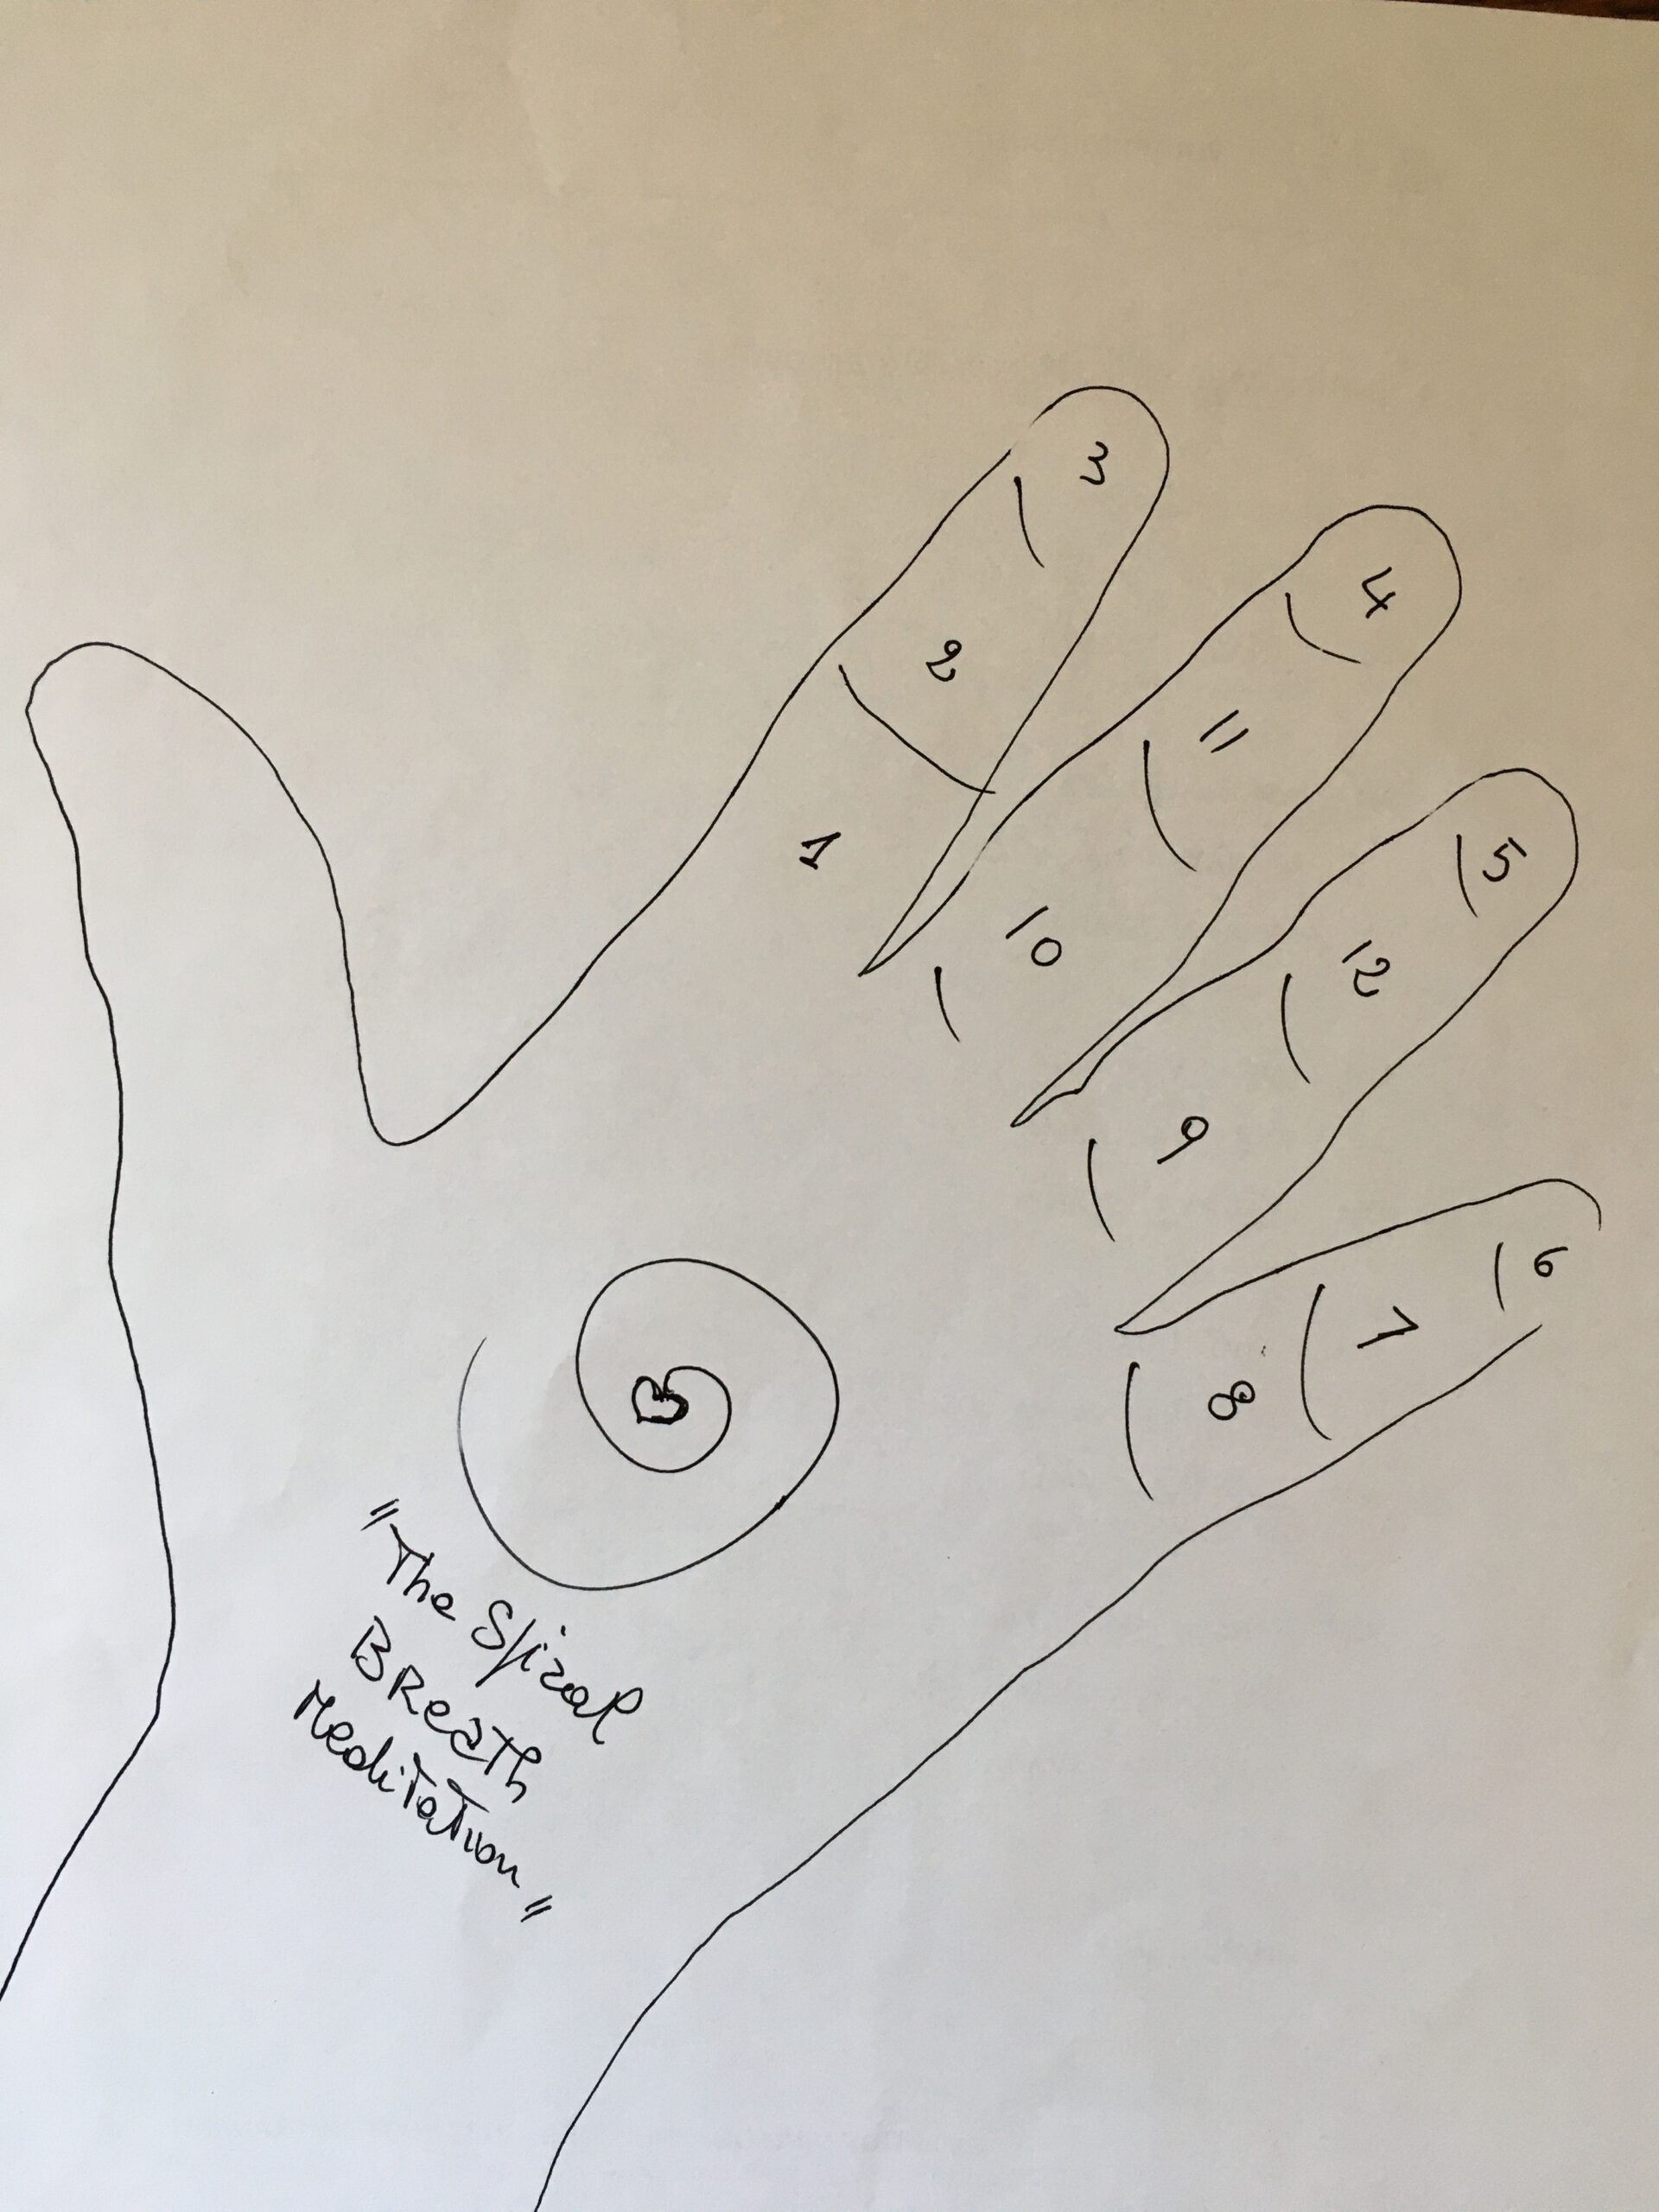 Finger/phalanges counting for focus